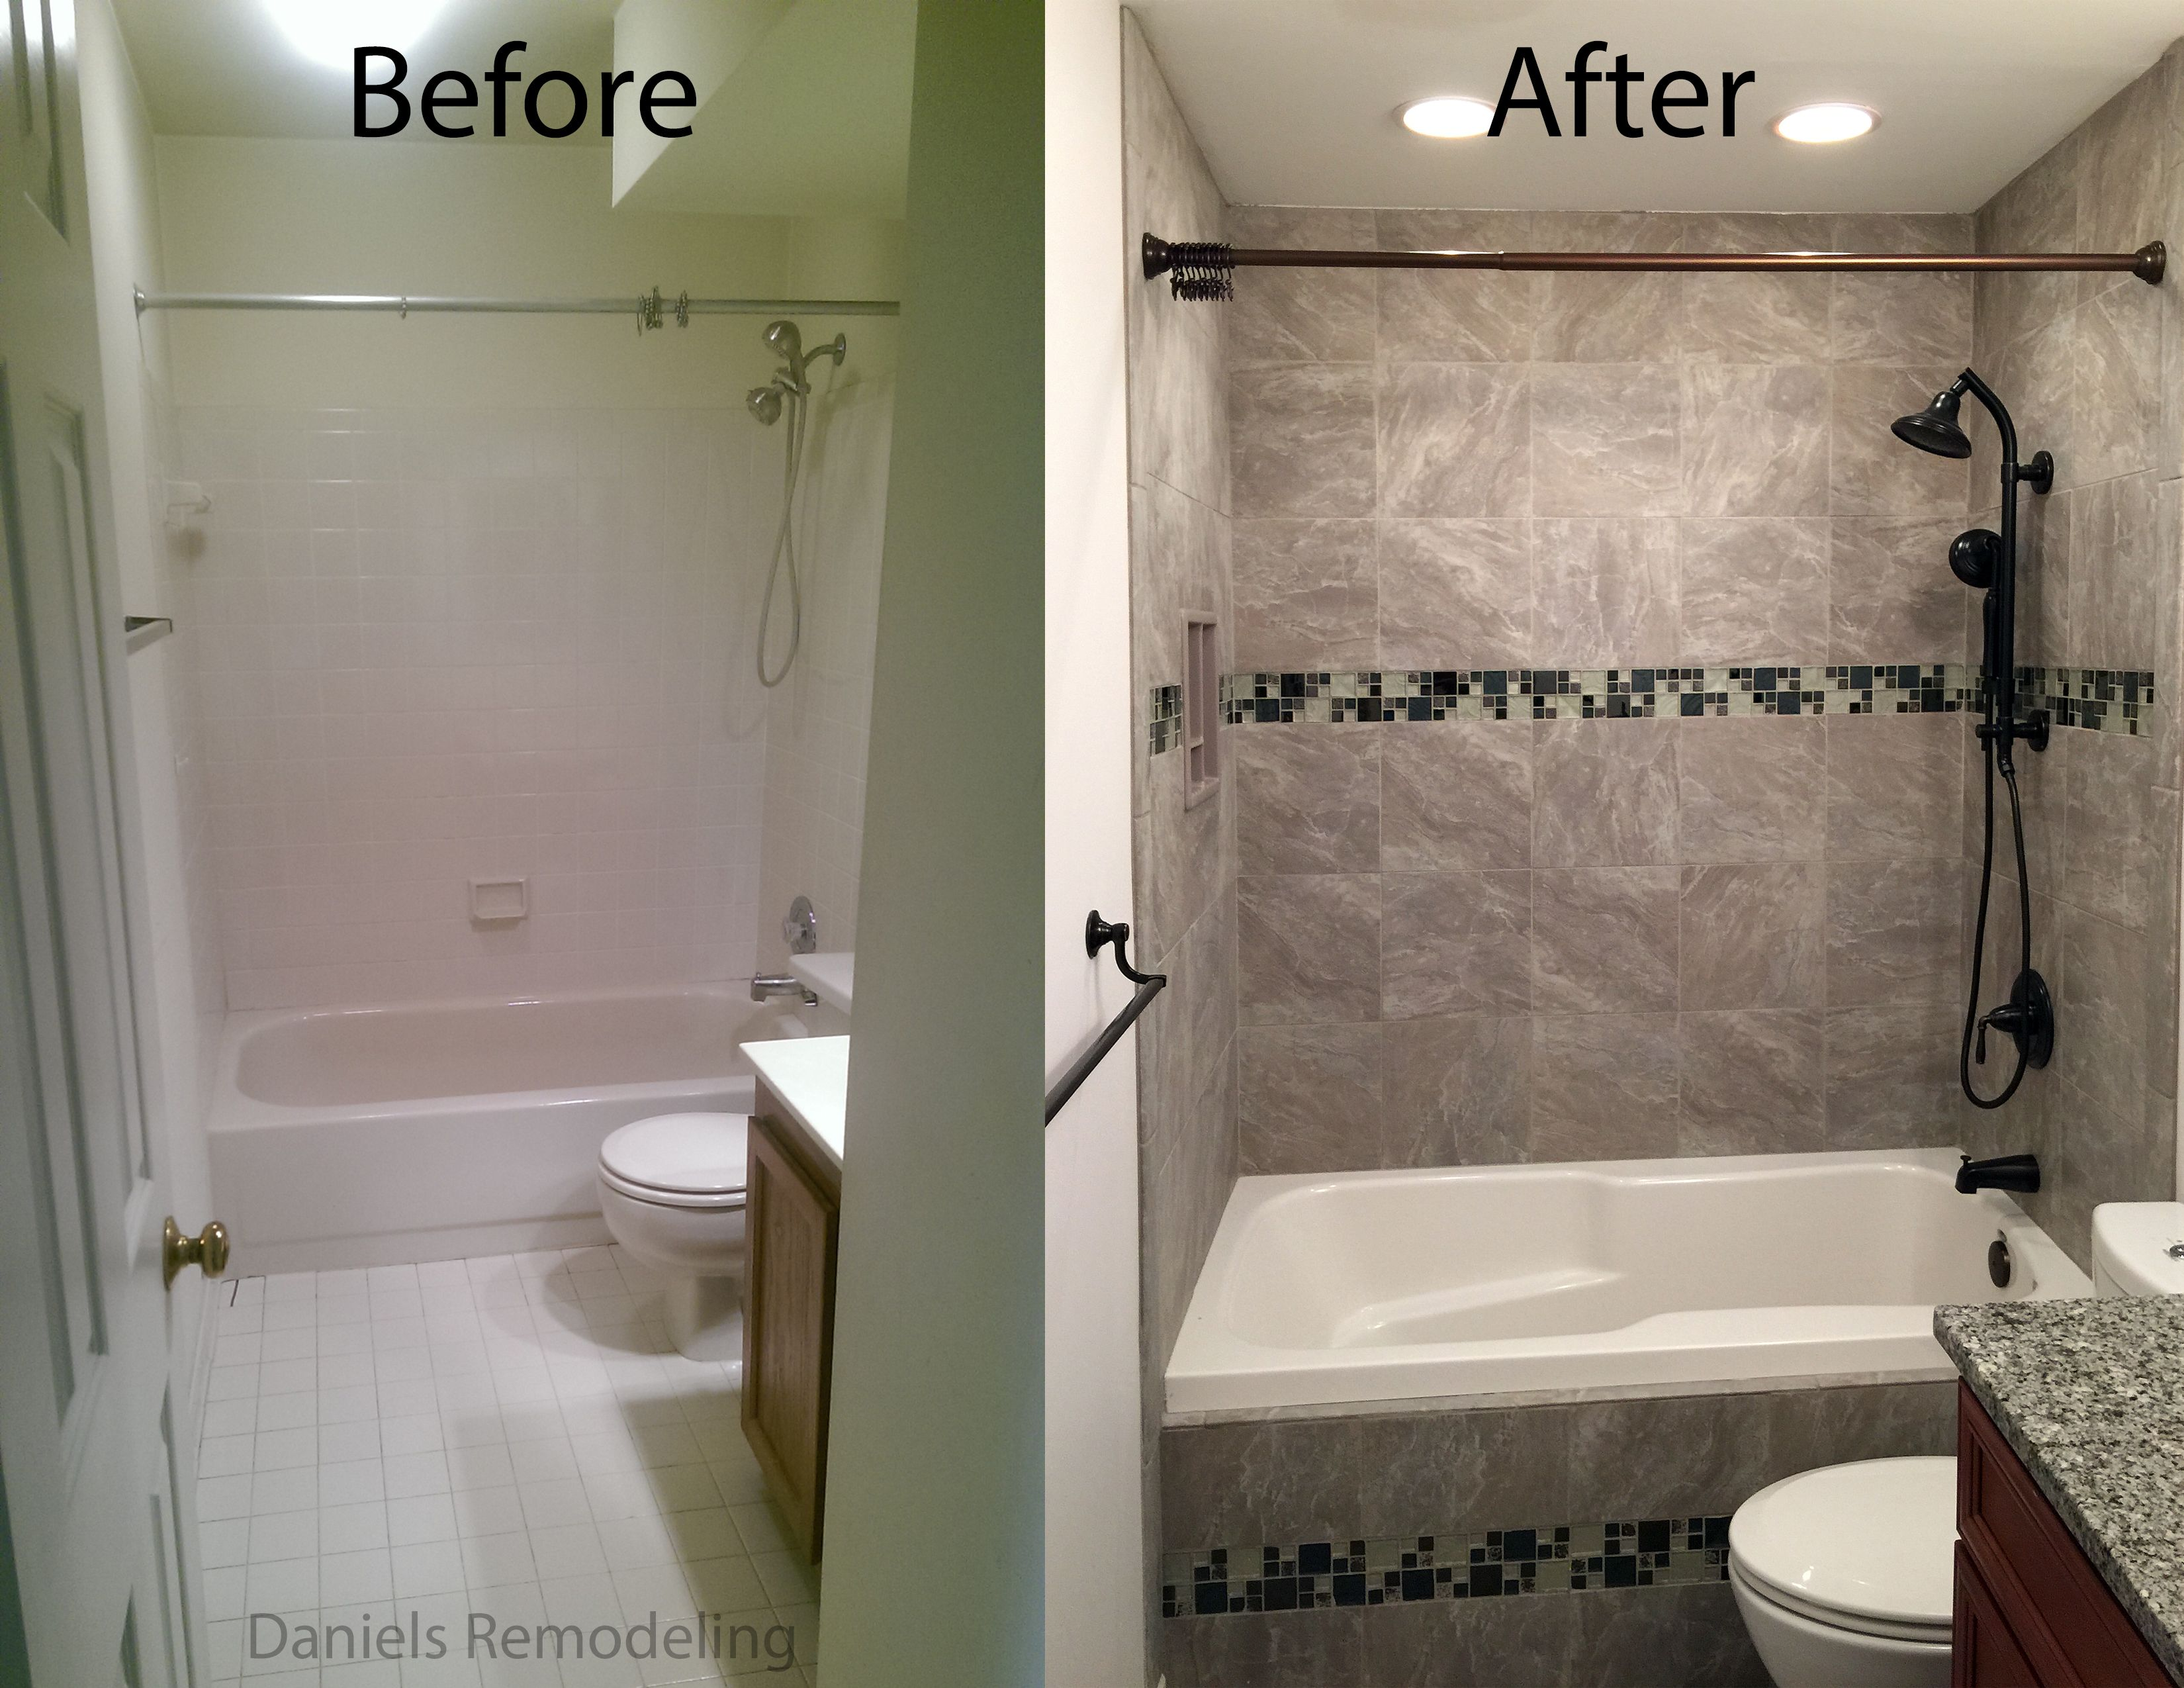 Before And After Hall Bathroom Remodel Alexandria Virginia Alluring Virginia Bathroom Remodeling Decorating Design